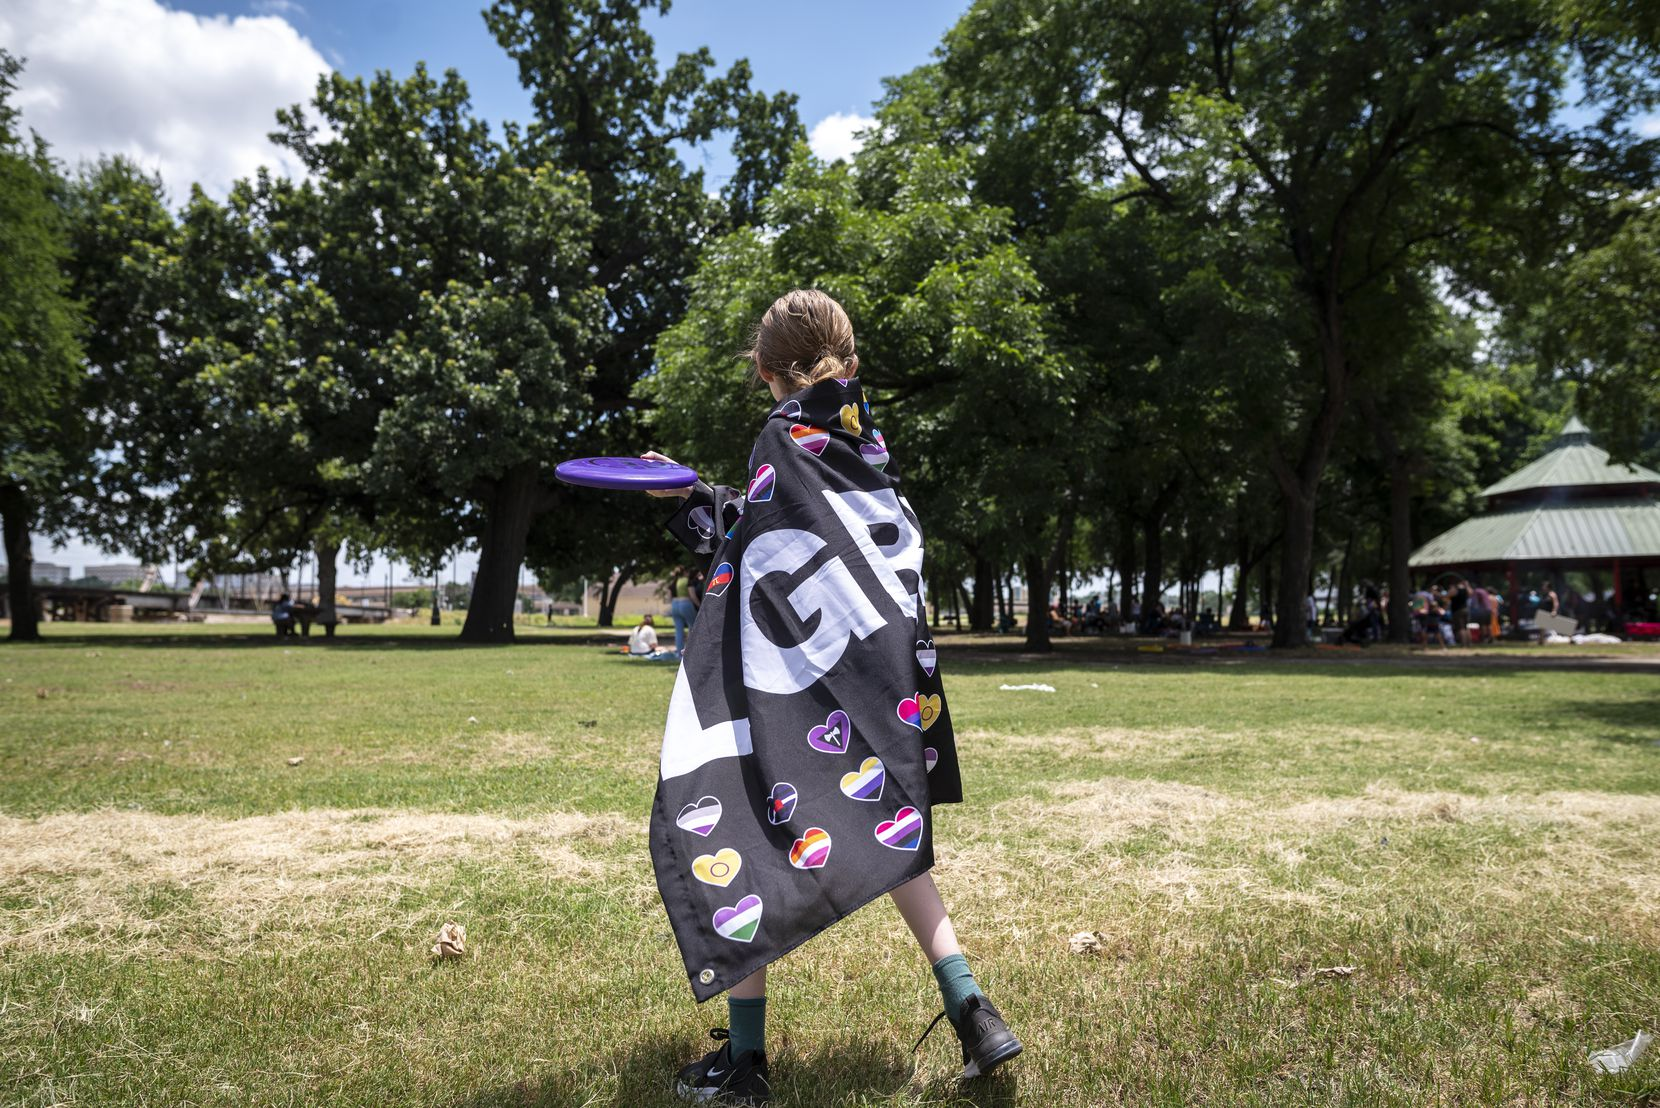 Alex Austin, 11, wears an LGBT flag while throwing Frisbee with her parents during the LGBTQ SAVES (Students, Allies, Volunteers, Educators, Support) Summer Camp CommUNITY Picnic at Trinity Park in Fort Worth on June 26.